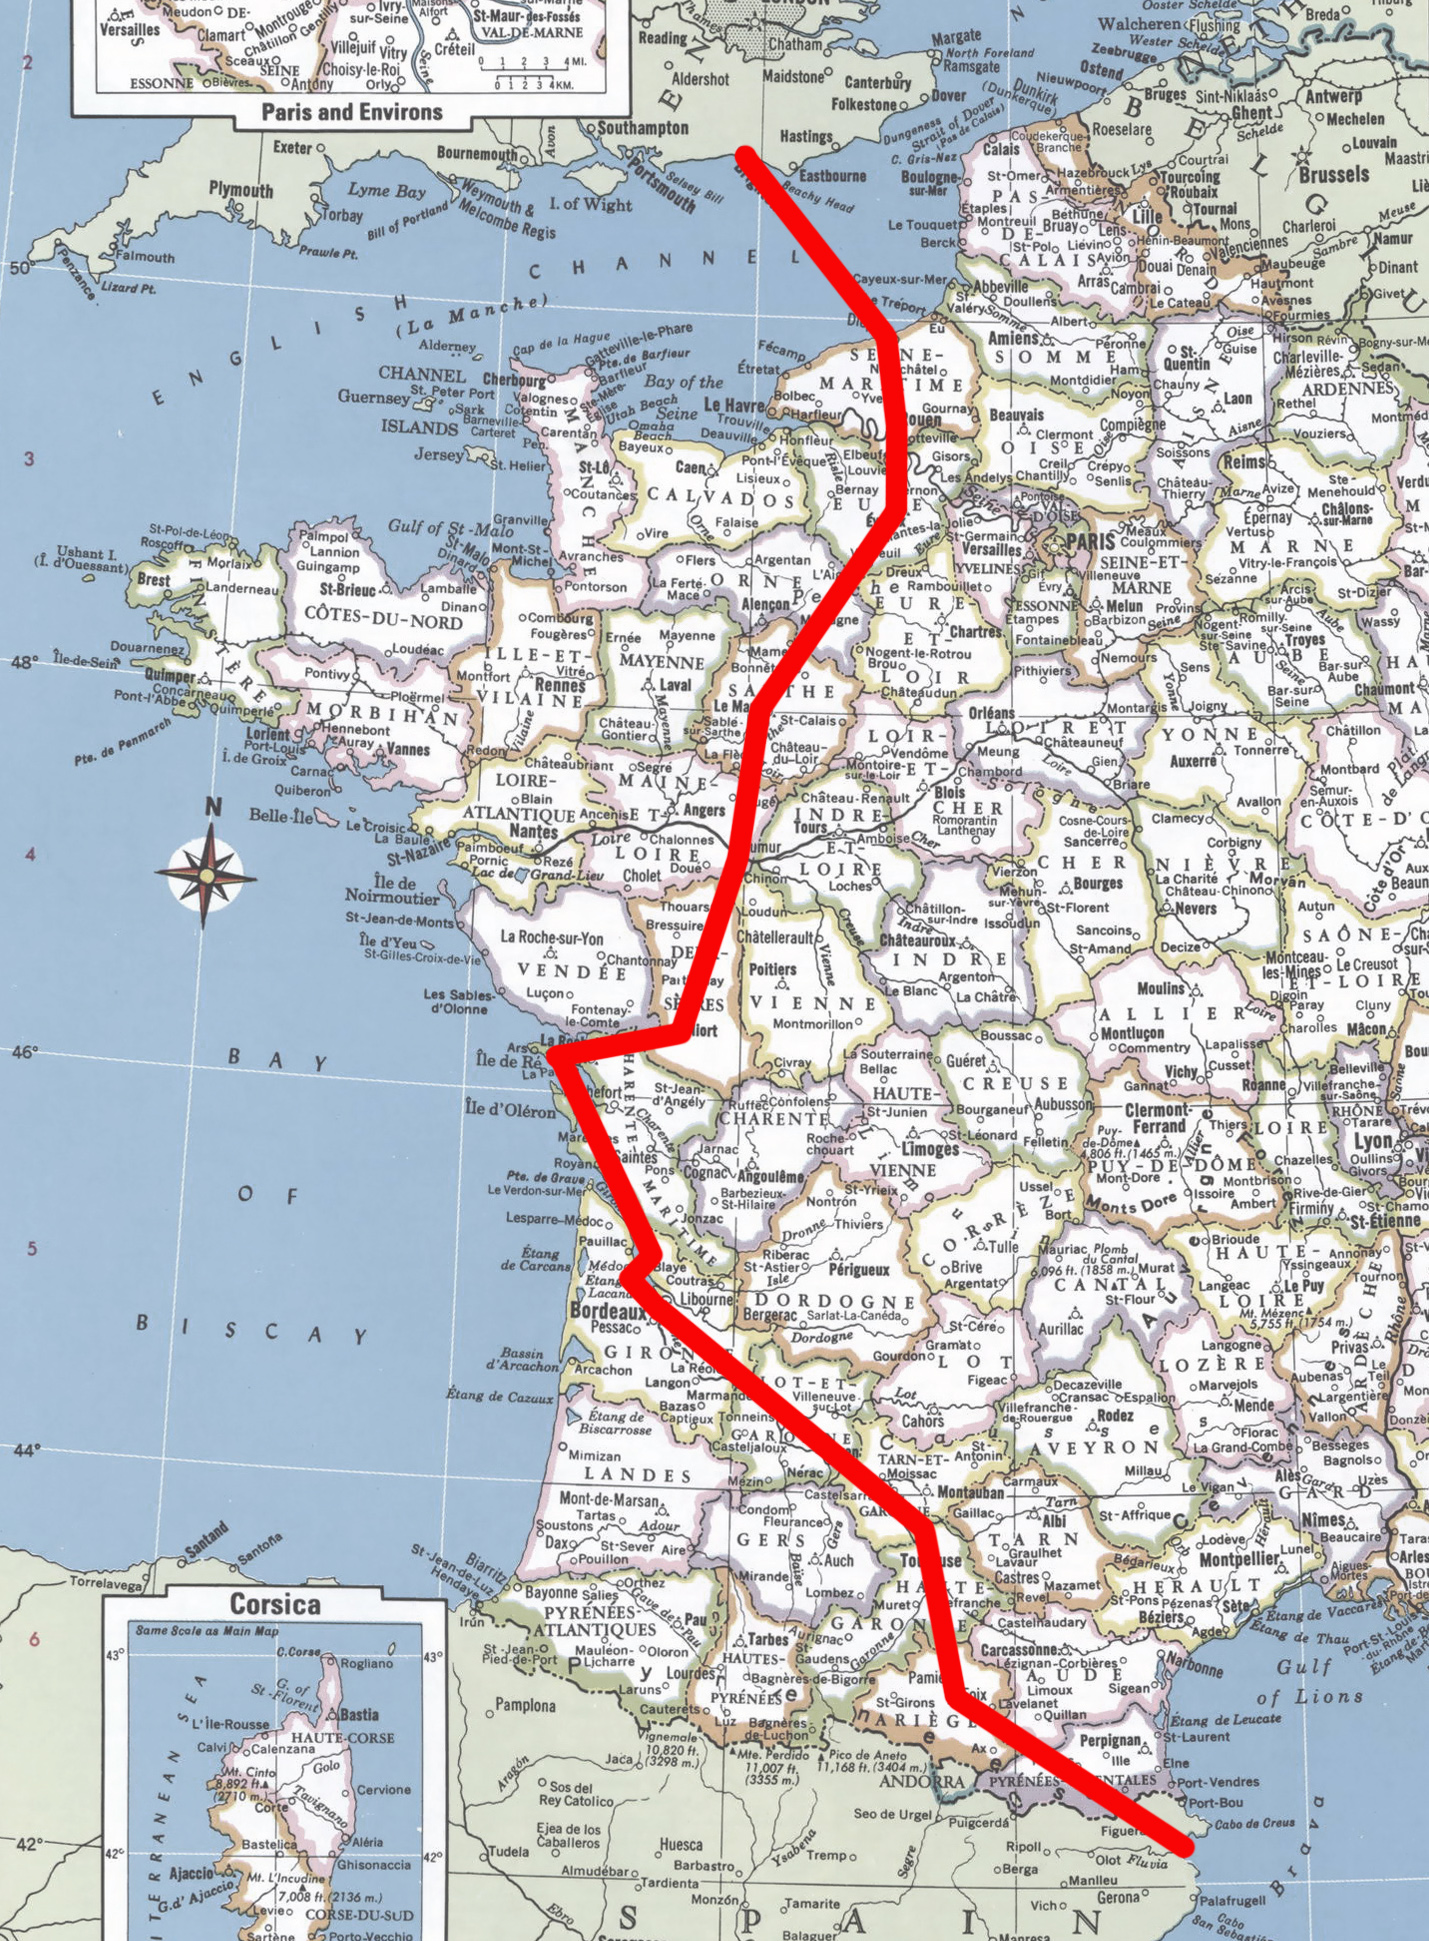 TGUE French trip route.jpg